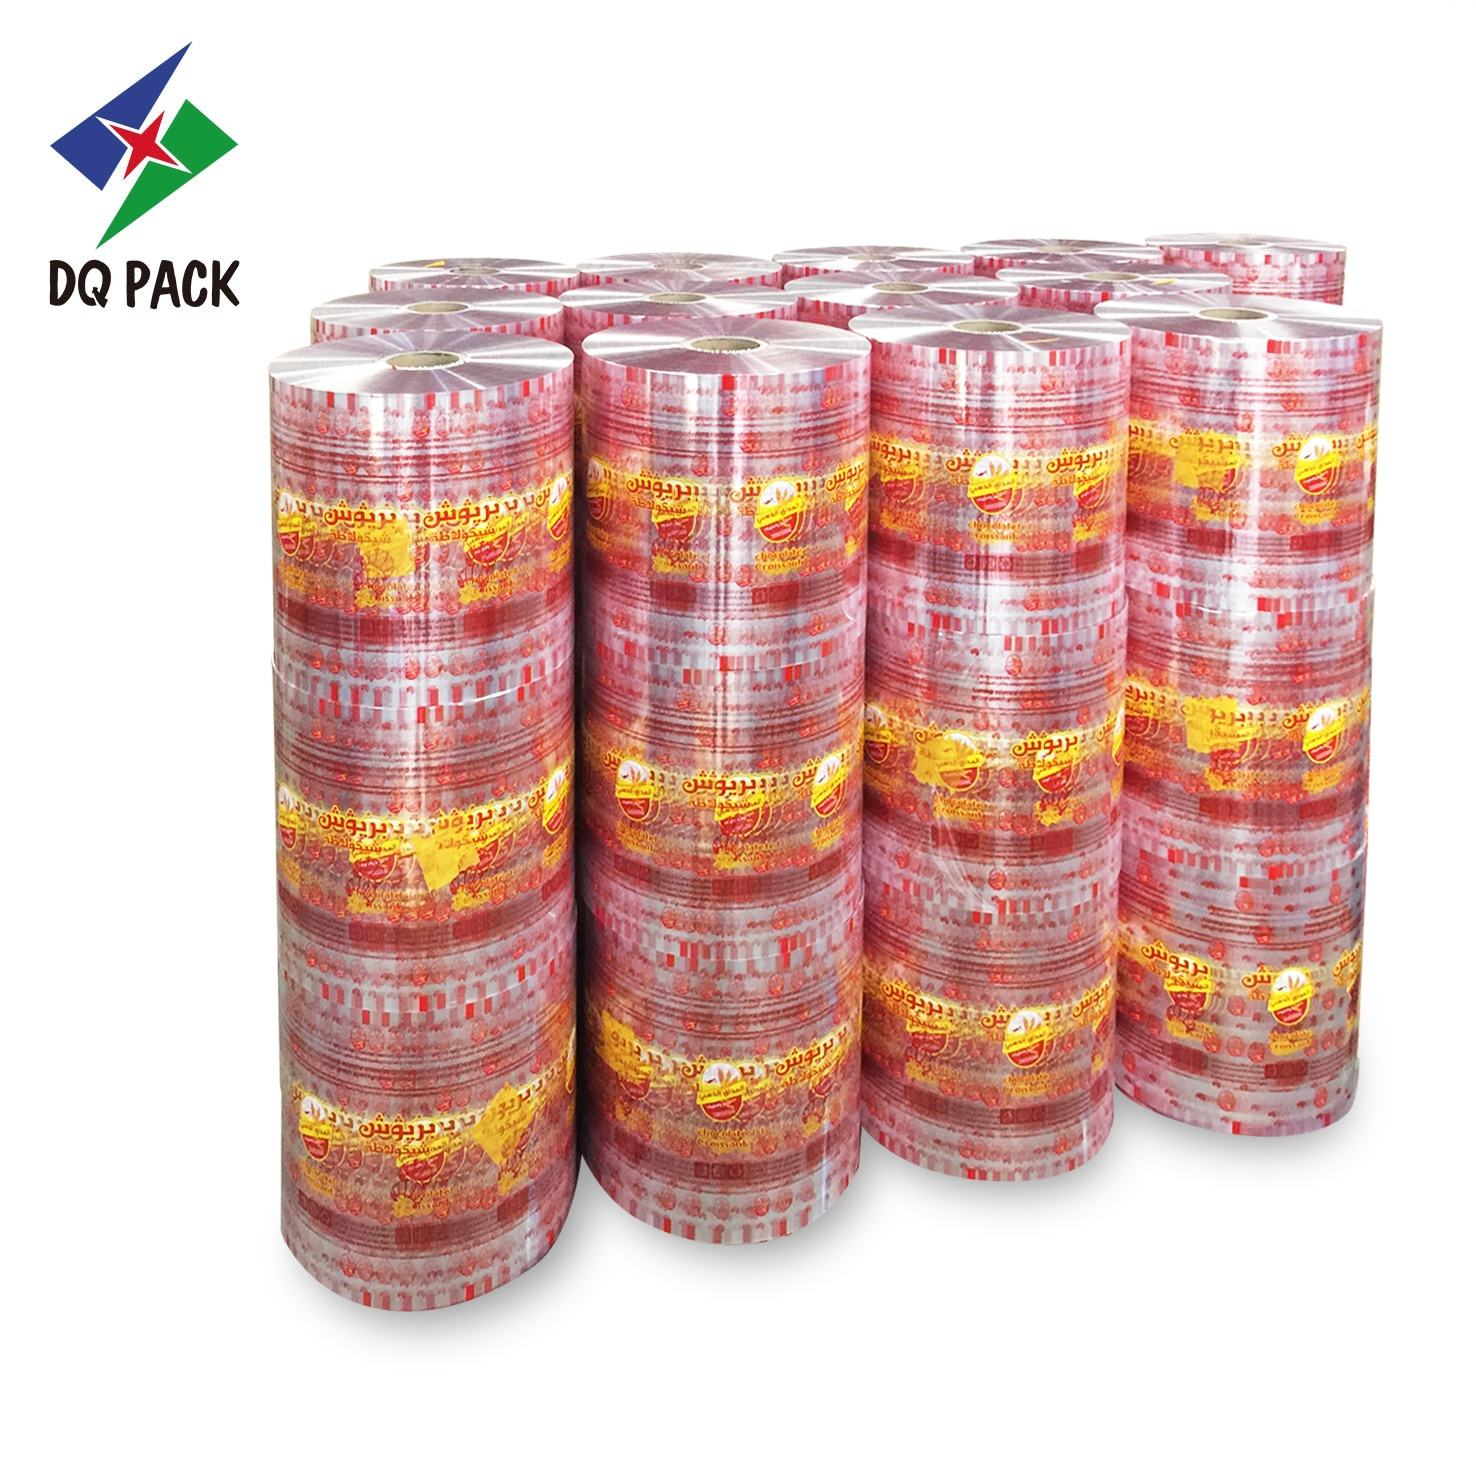 DQ PACK Custom Printed High Transparency Laminated Medical Masky BOPP Film